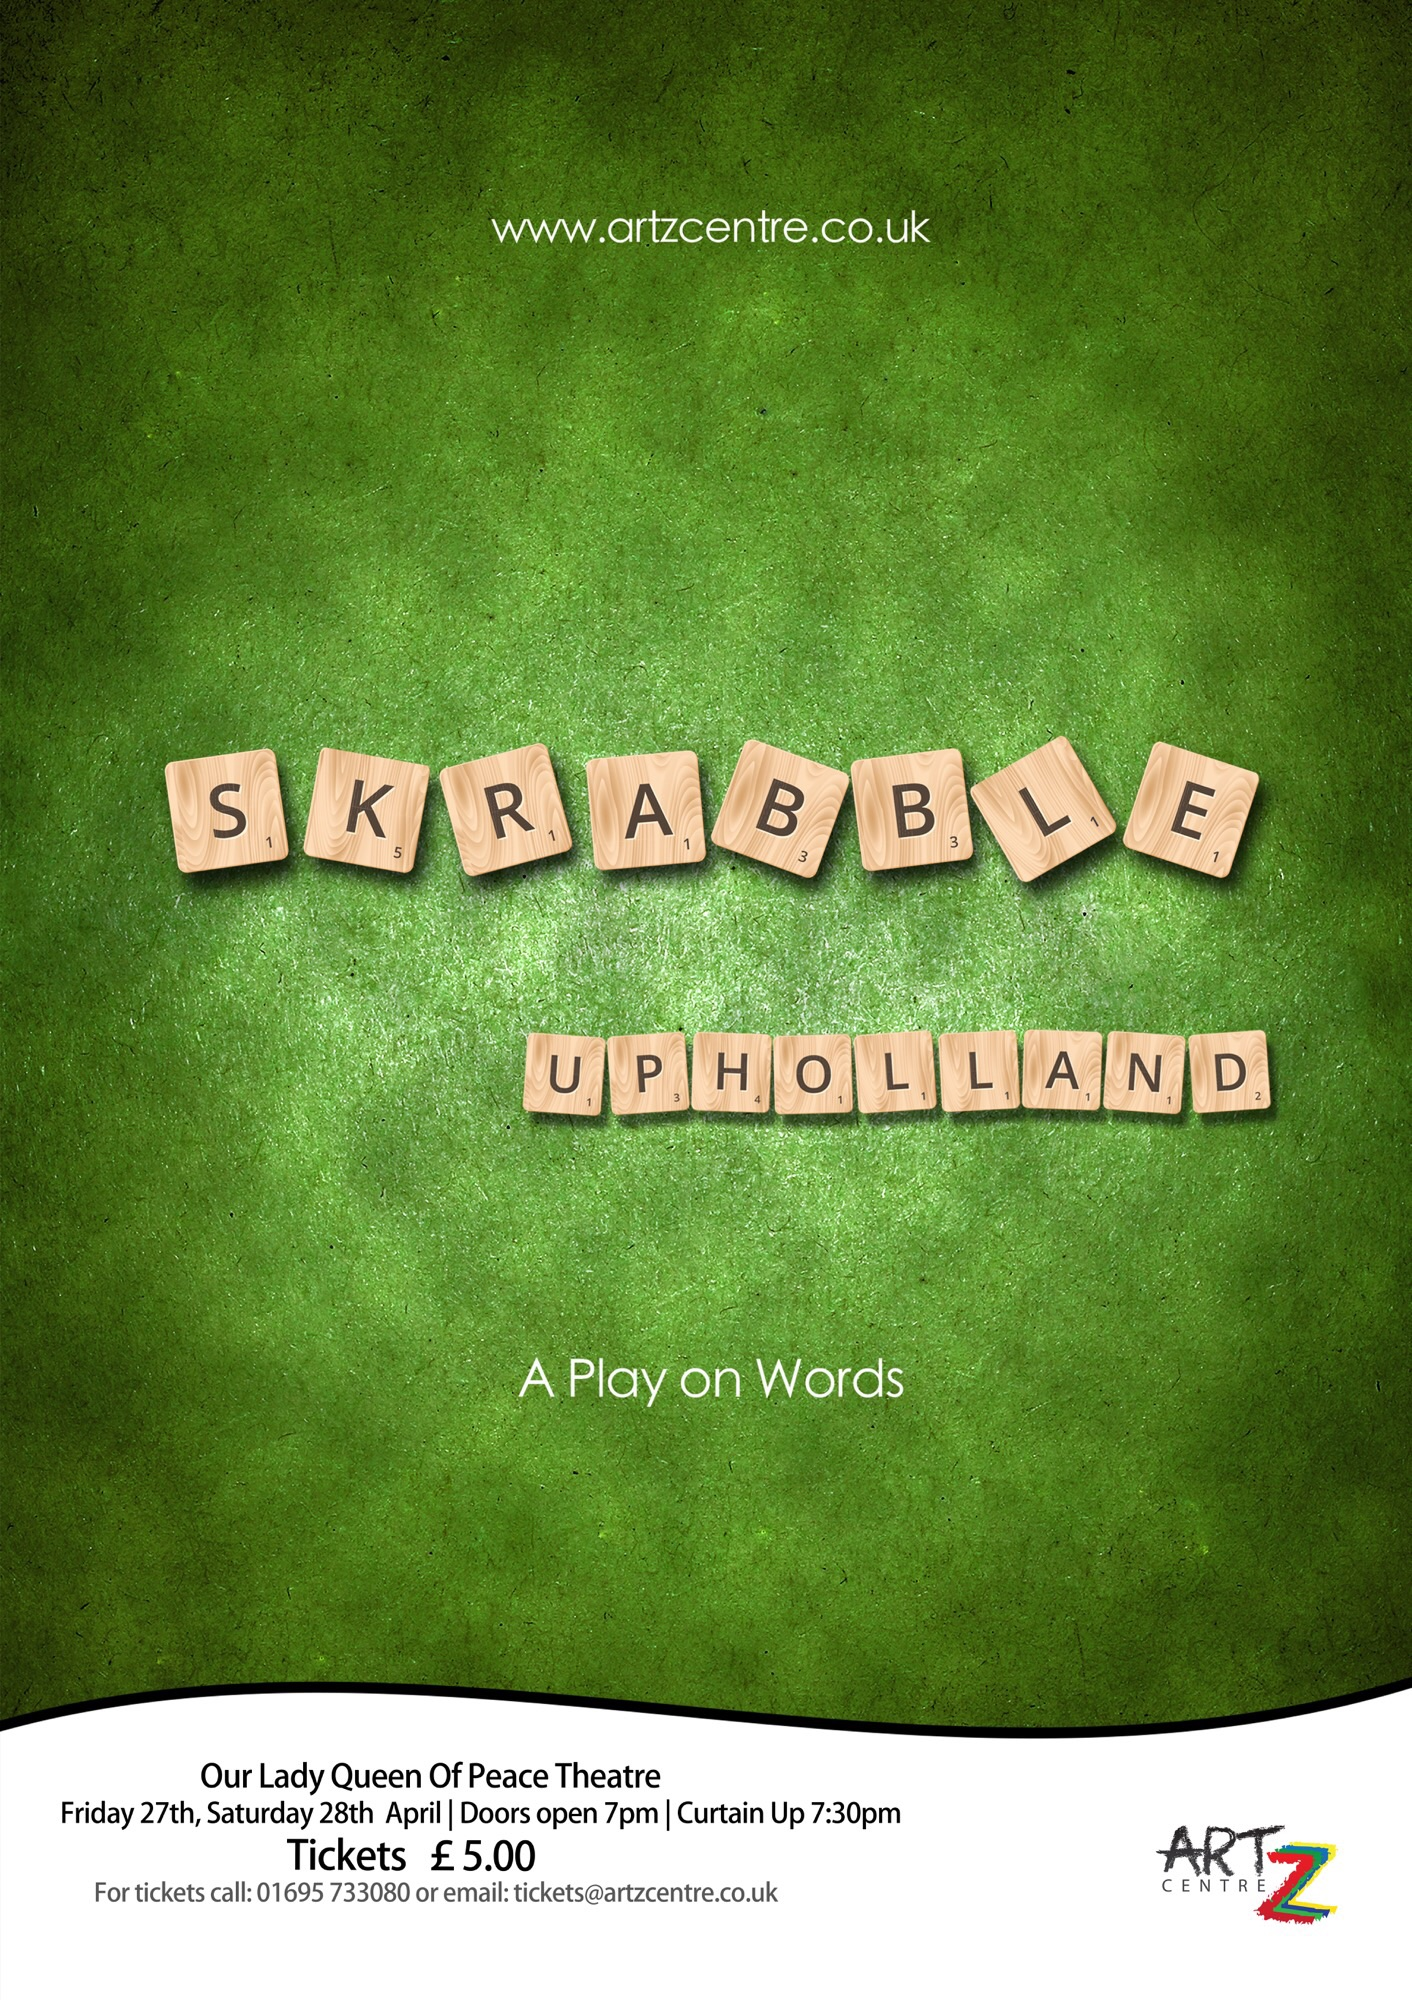 , Artz Centre's Upholland academy present 'Skrabble', Skem News - The Top Source for Skelmersdale News, Skem News - The Top Source for Skelmersdale News